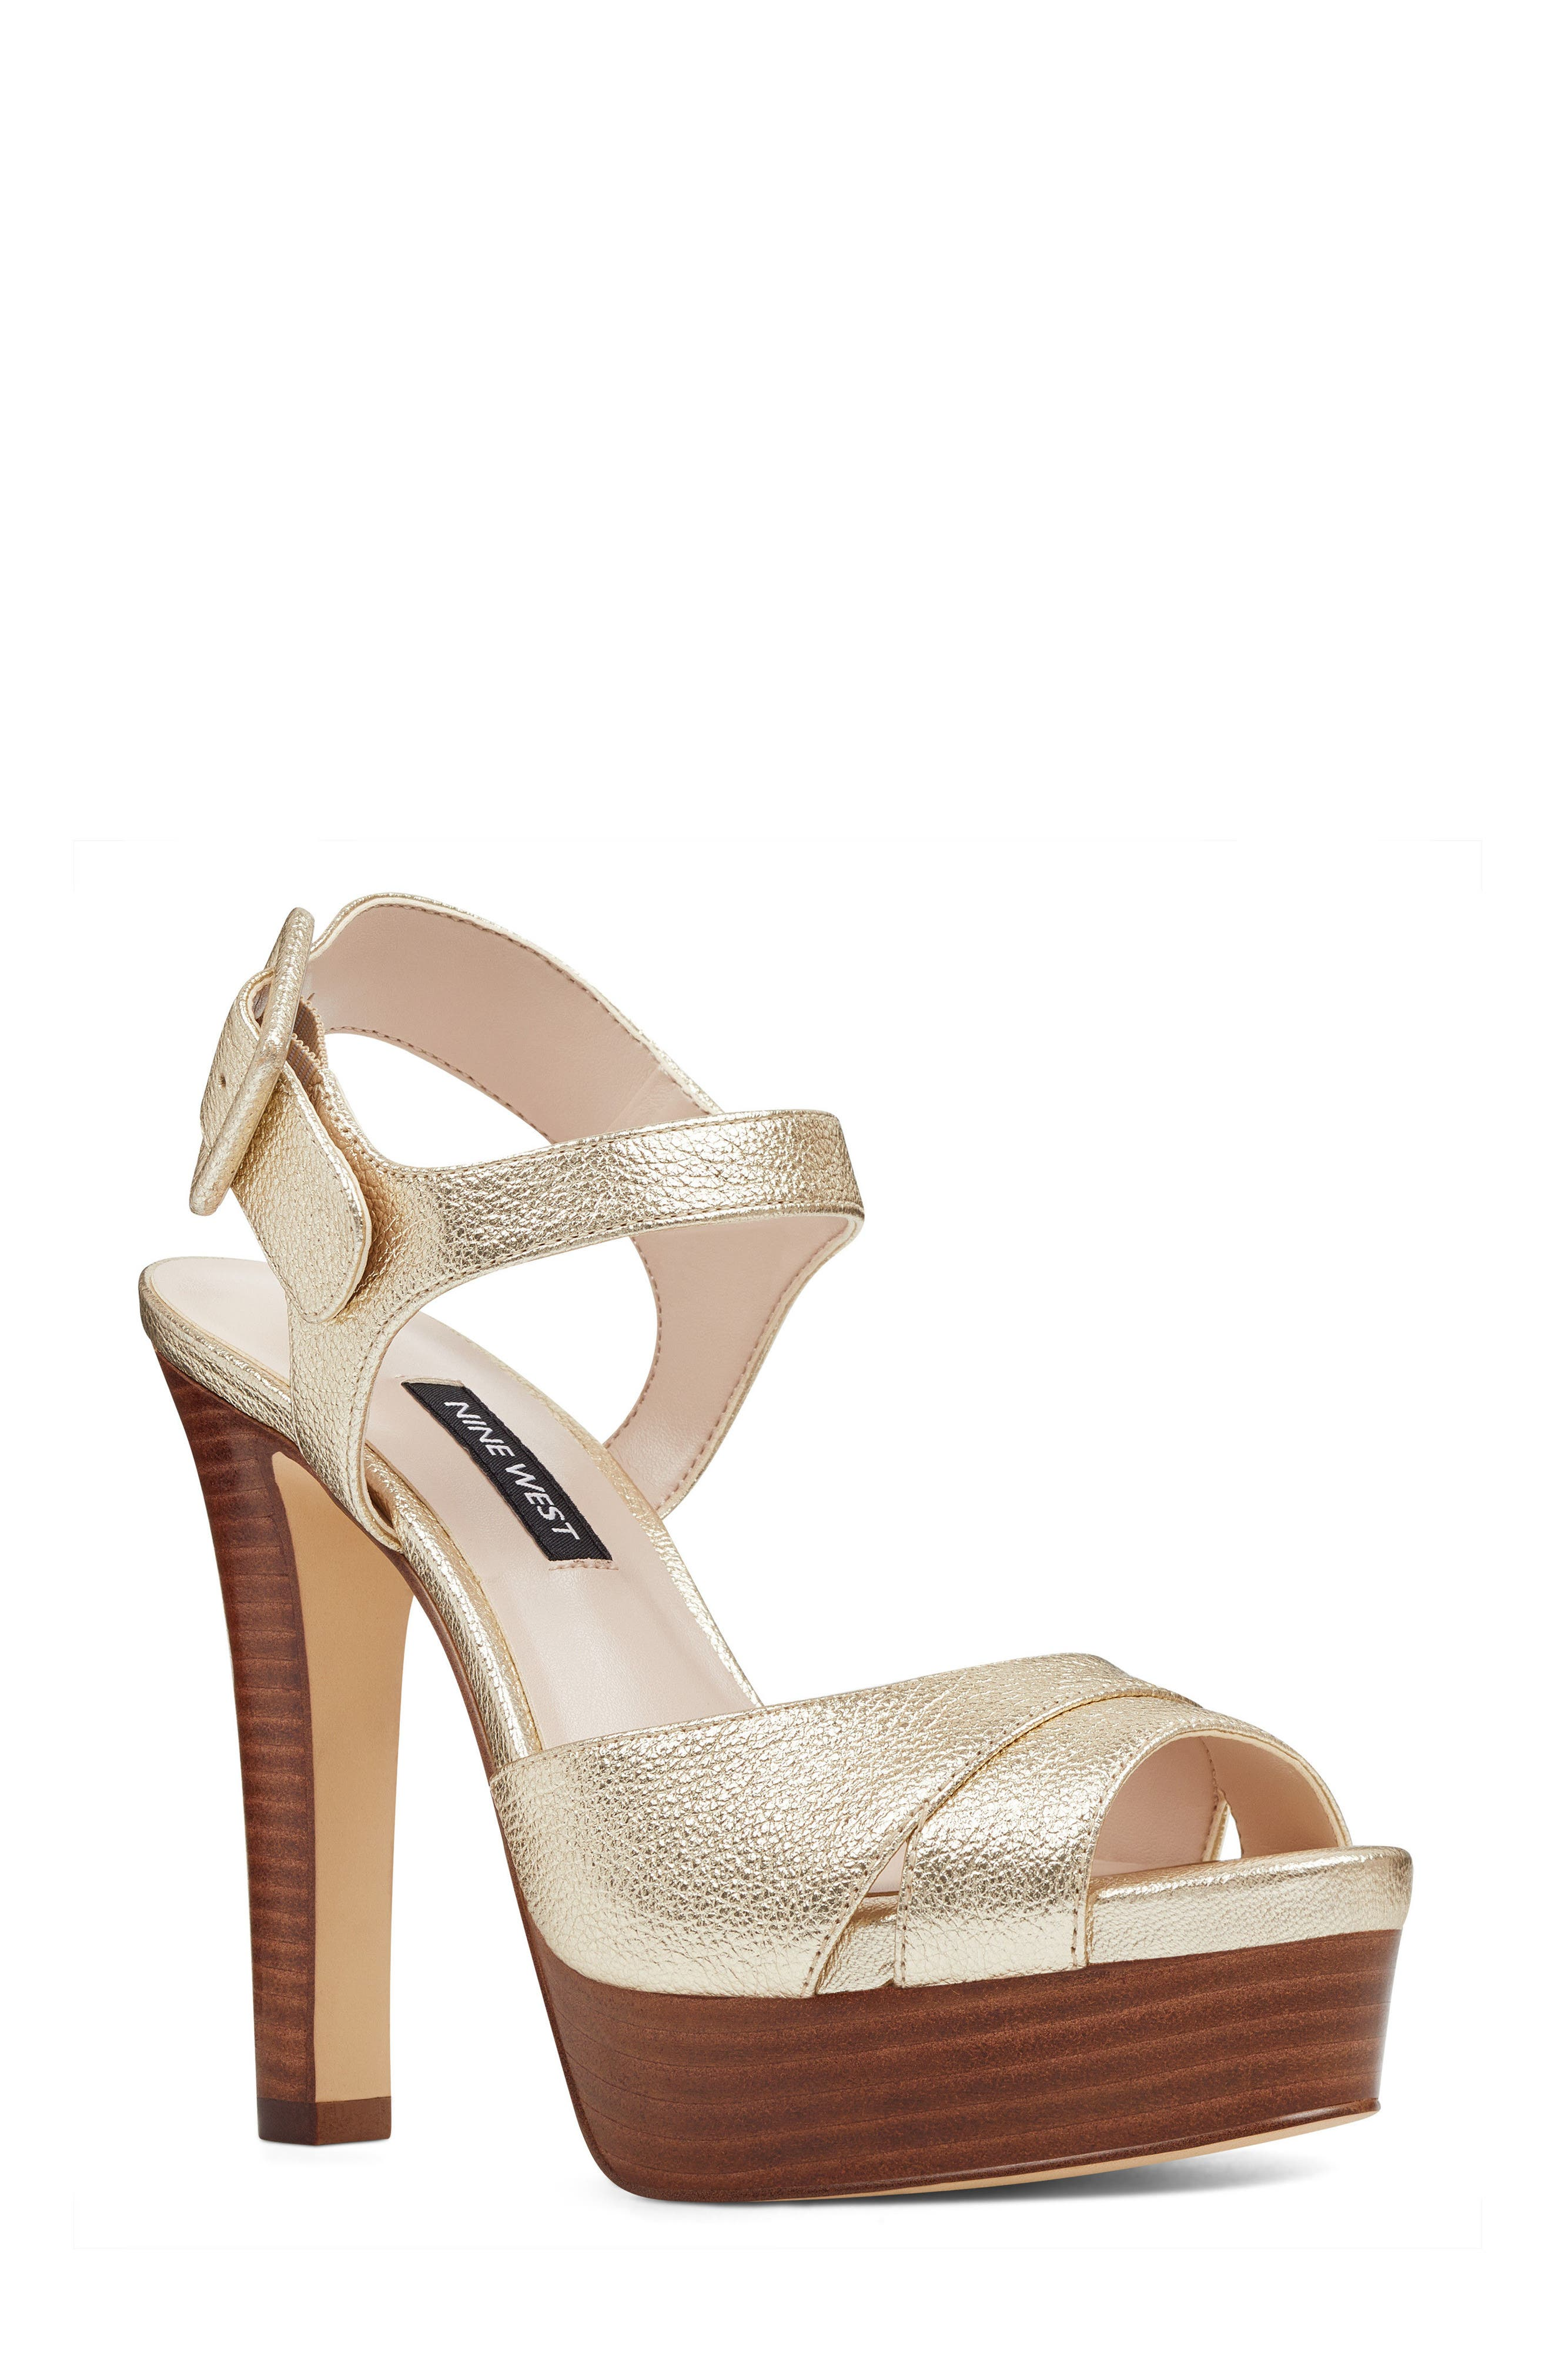 Ibyn Platform Sandal,                         Main,                         color, Light Gold Leather